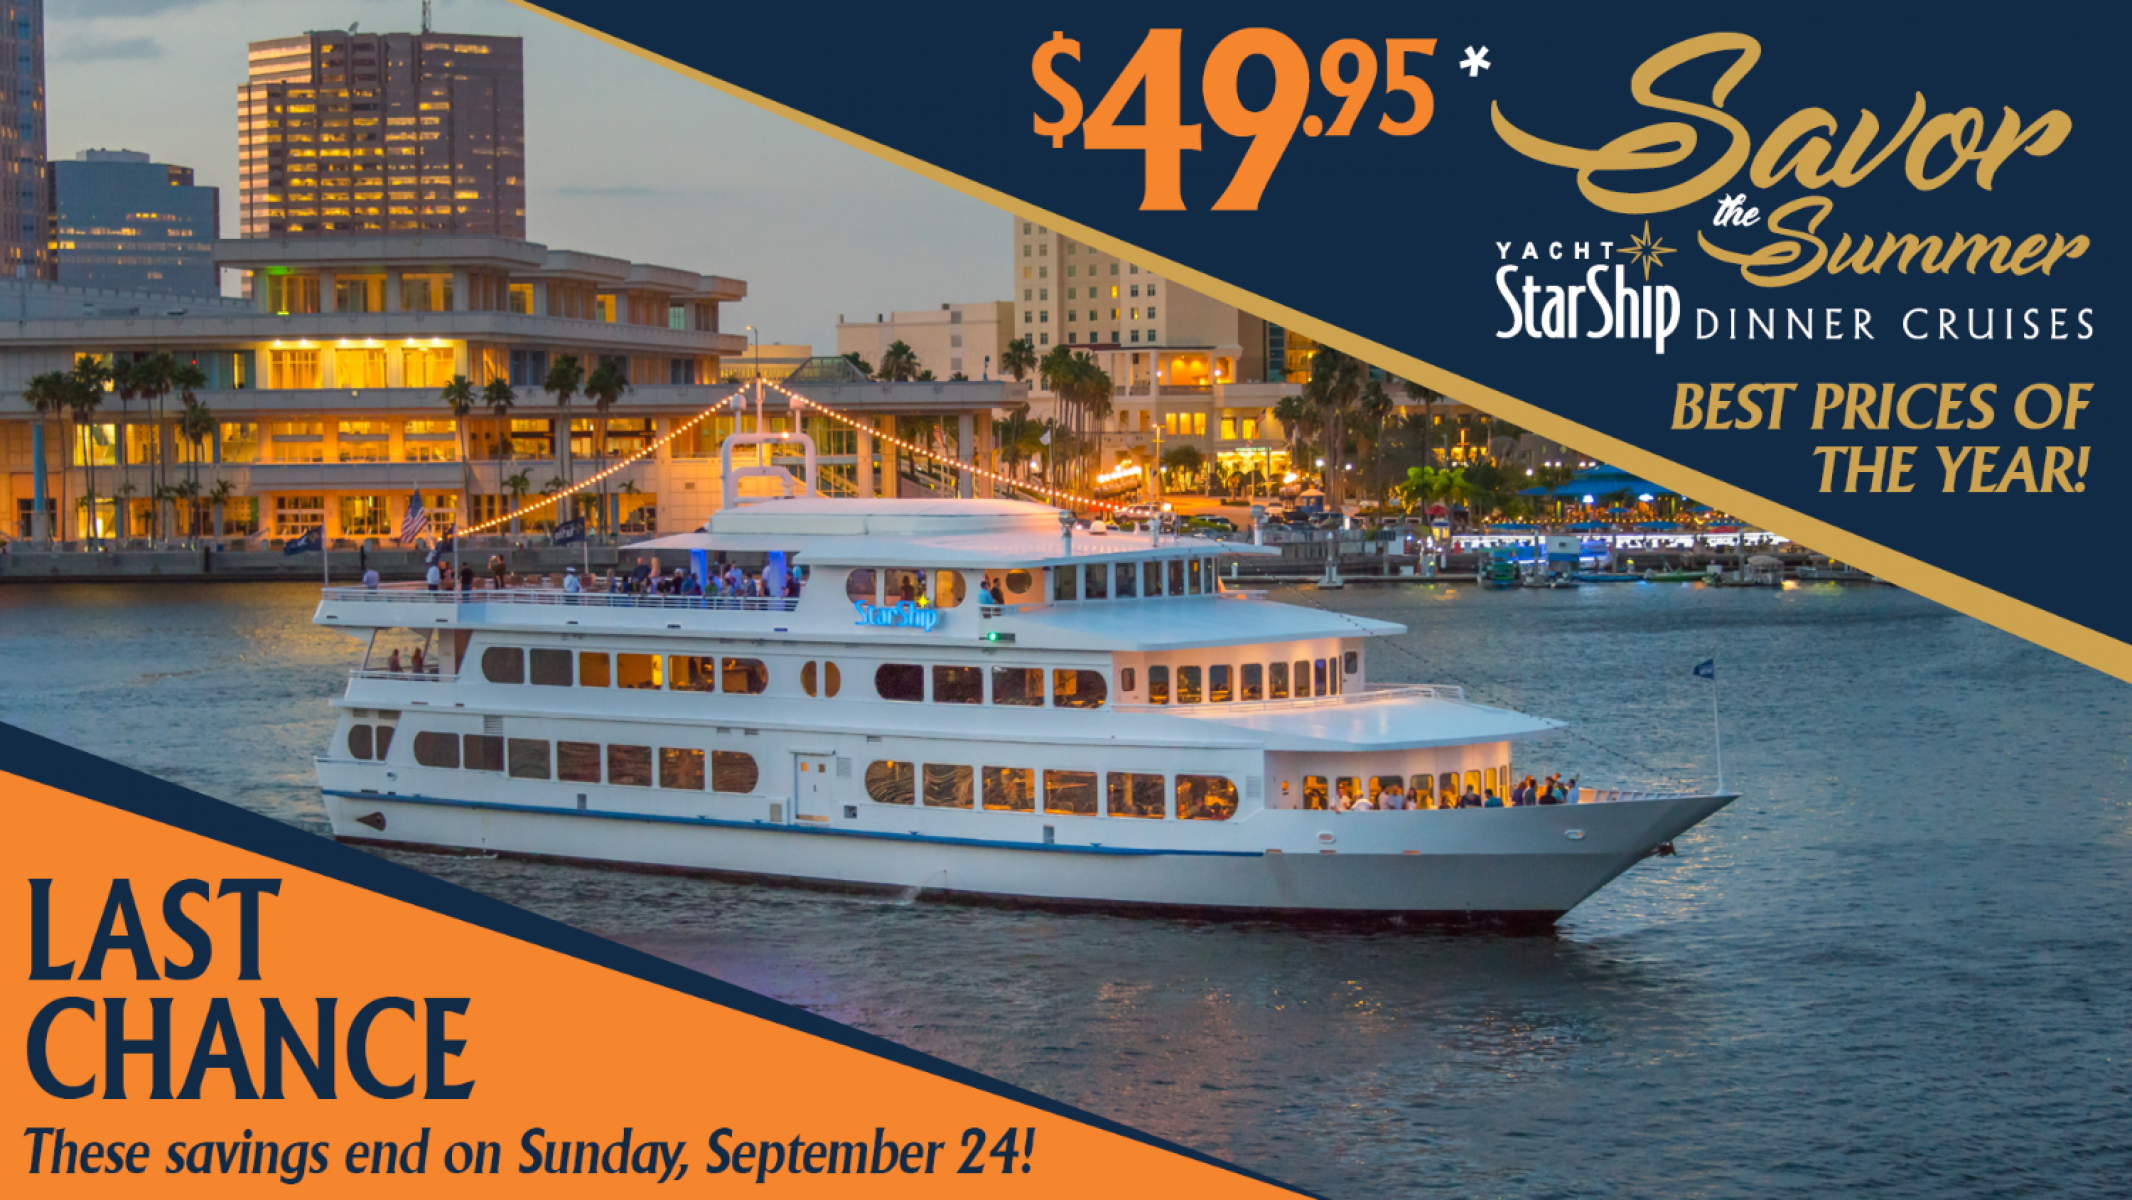 Savor the Summer Dinner Cruises